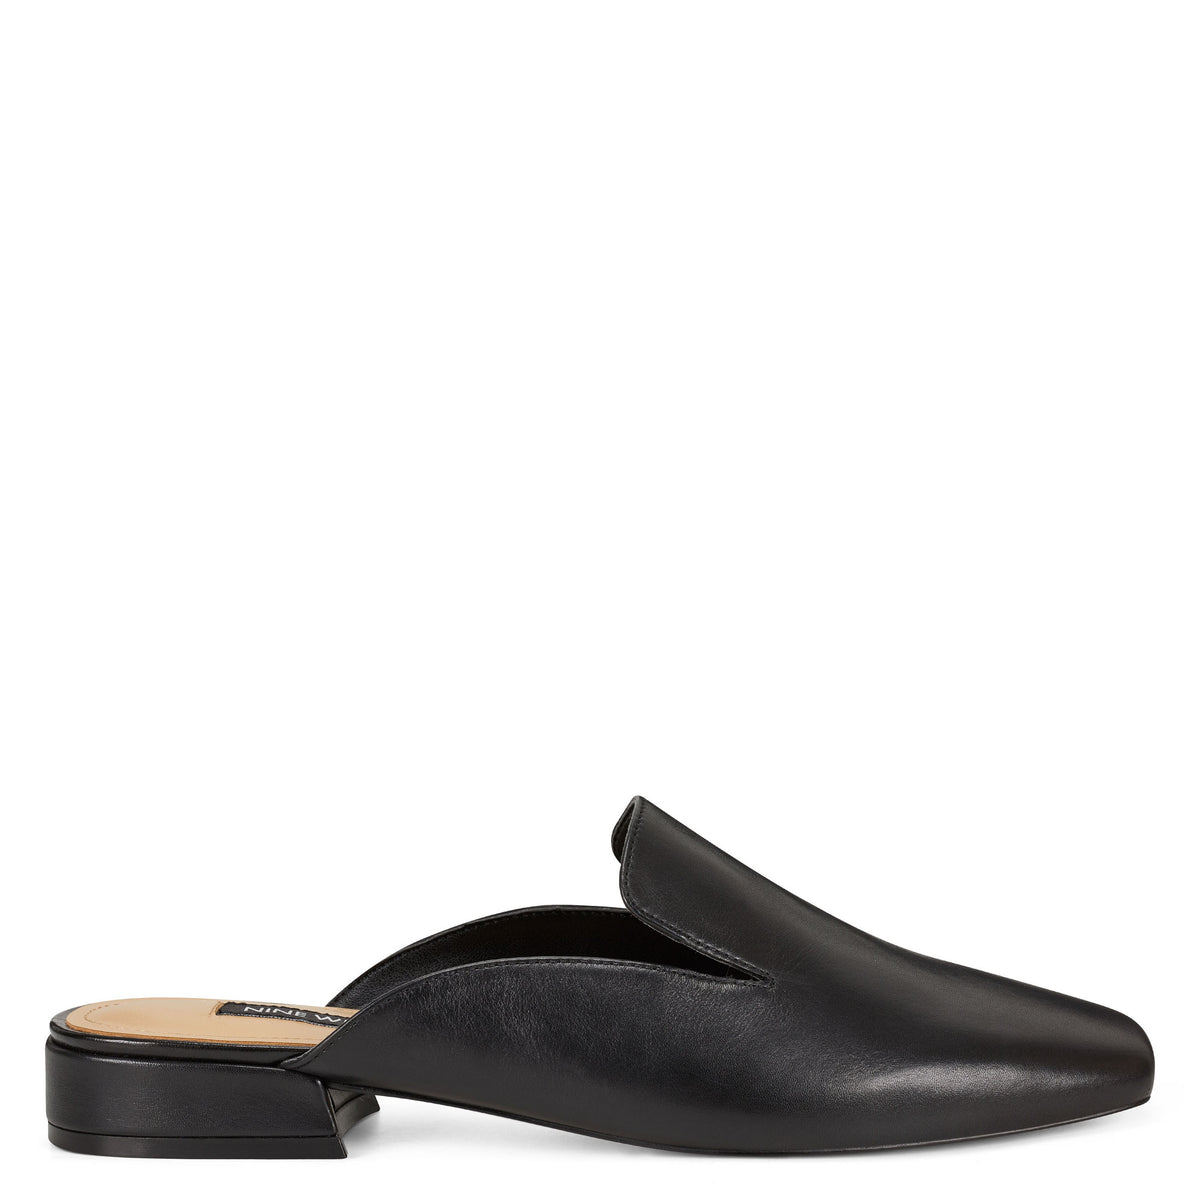 smitten-casual-mules-in-black-leather